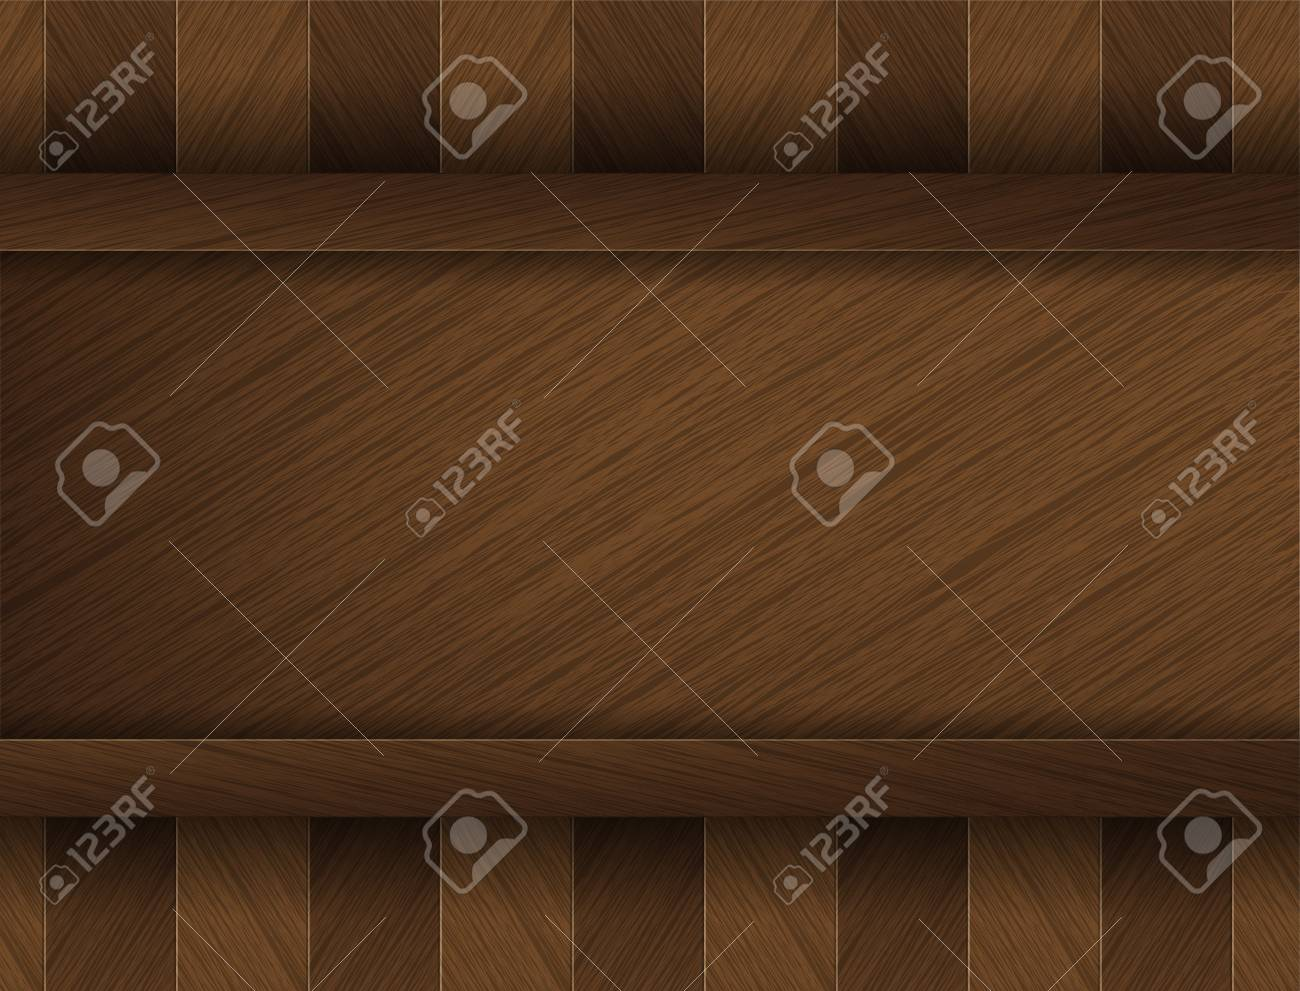 Wood Floor Background Concept with space for customer text. Stock Vector - 17853444